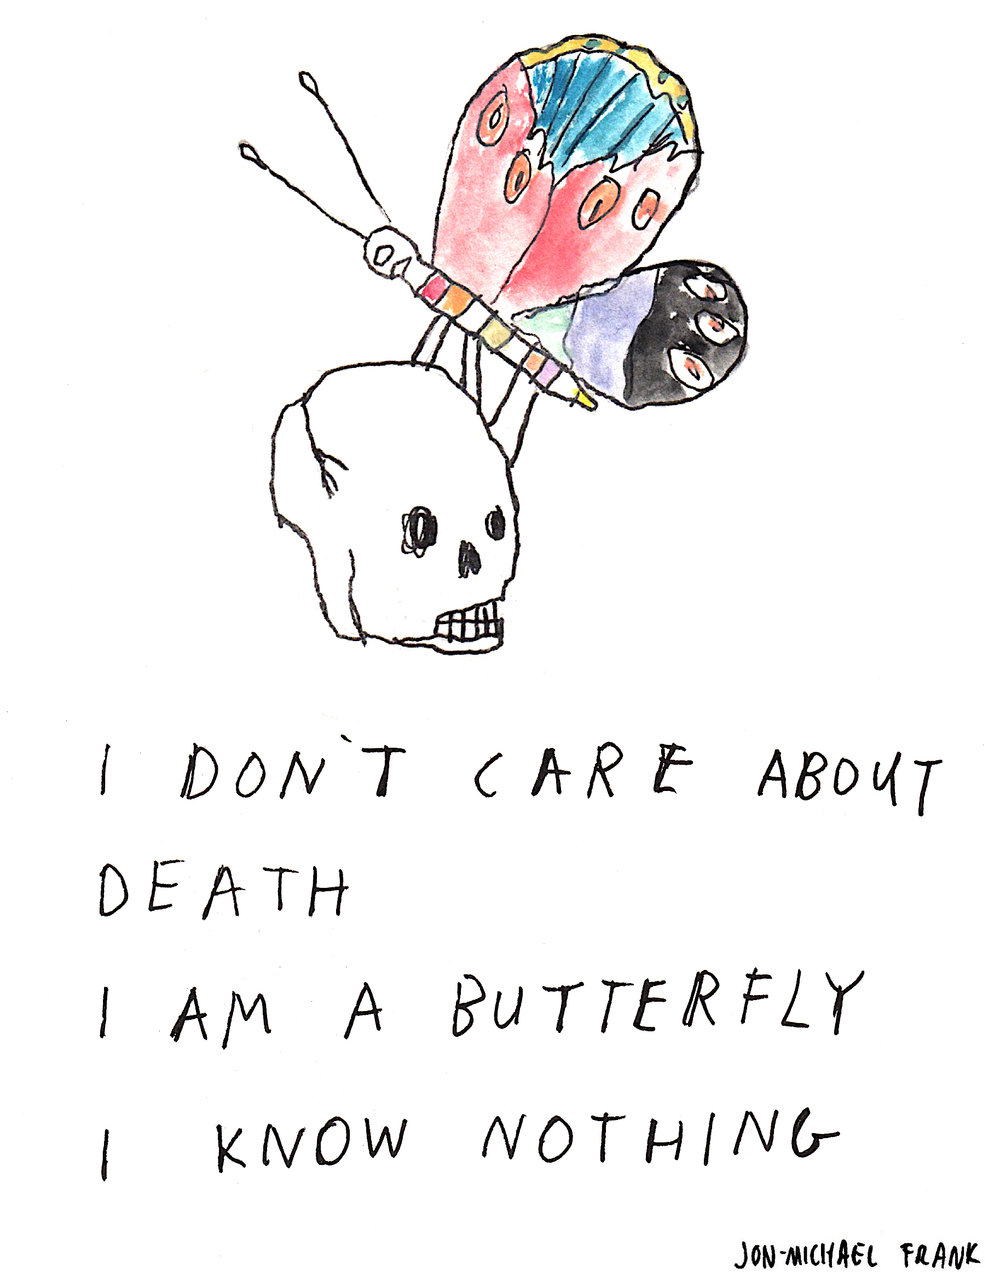 butterflydeath.jpg